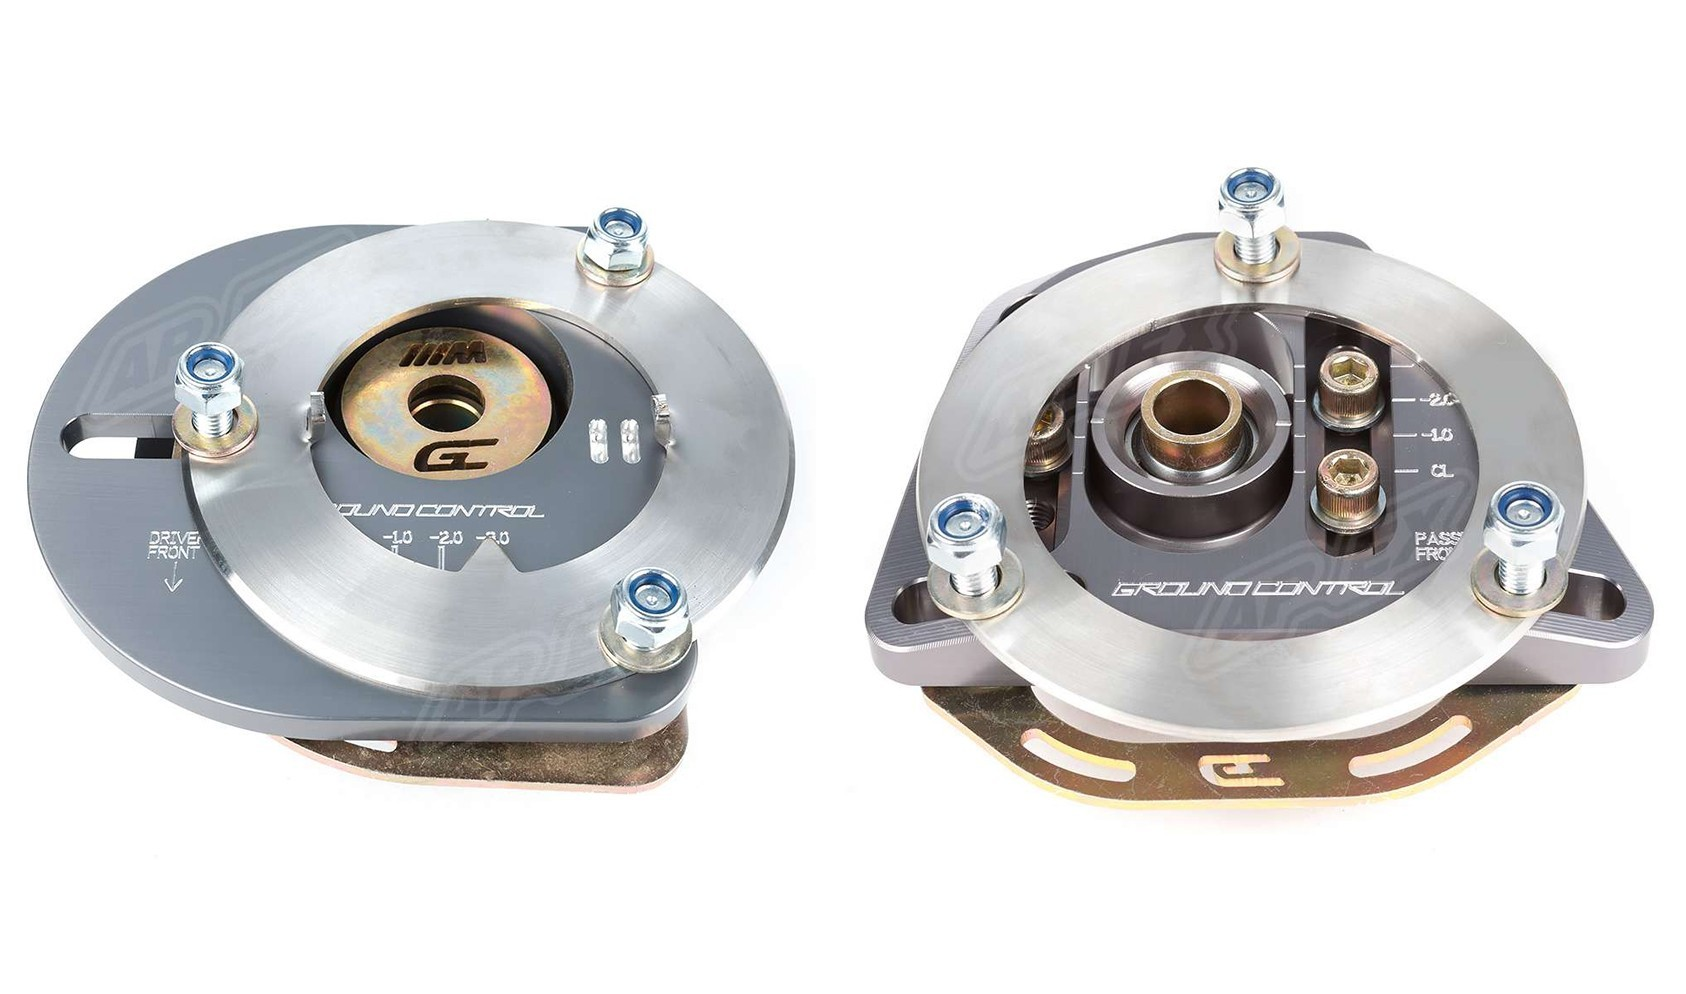 Ground Control adjustable camber plates. Street (left) and Race (right).